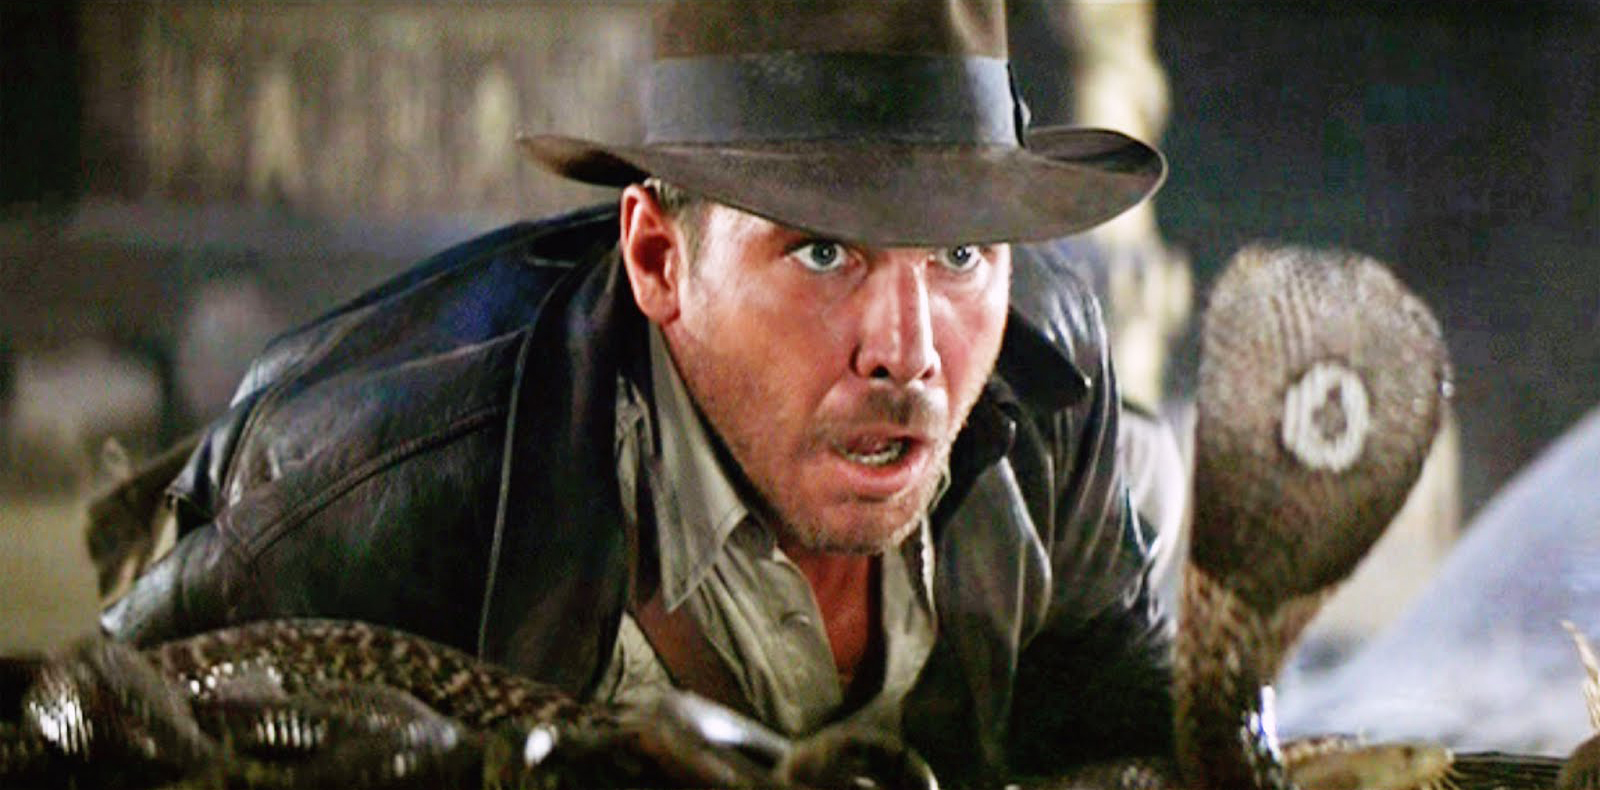 Raiders-of-the-Lost-Ark_3